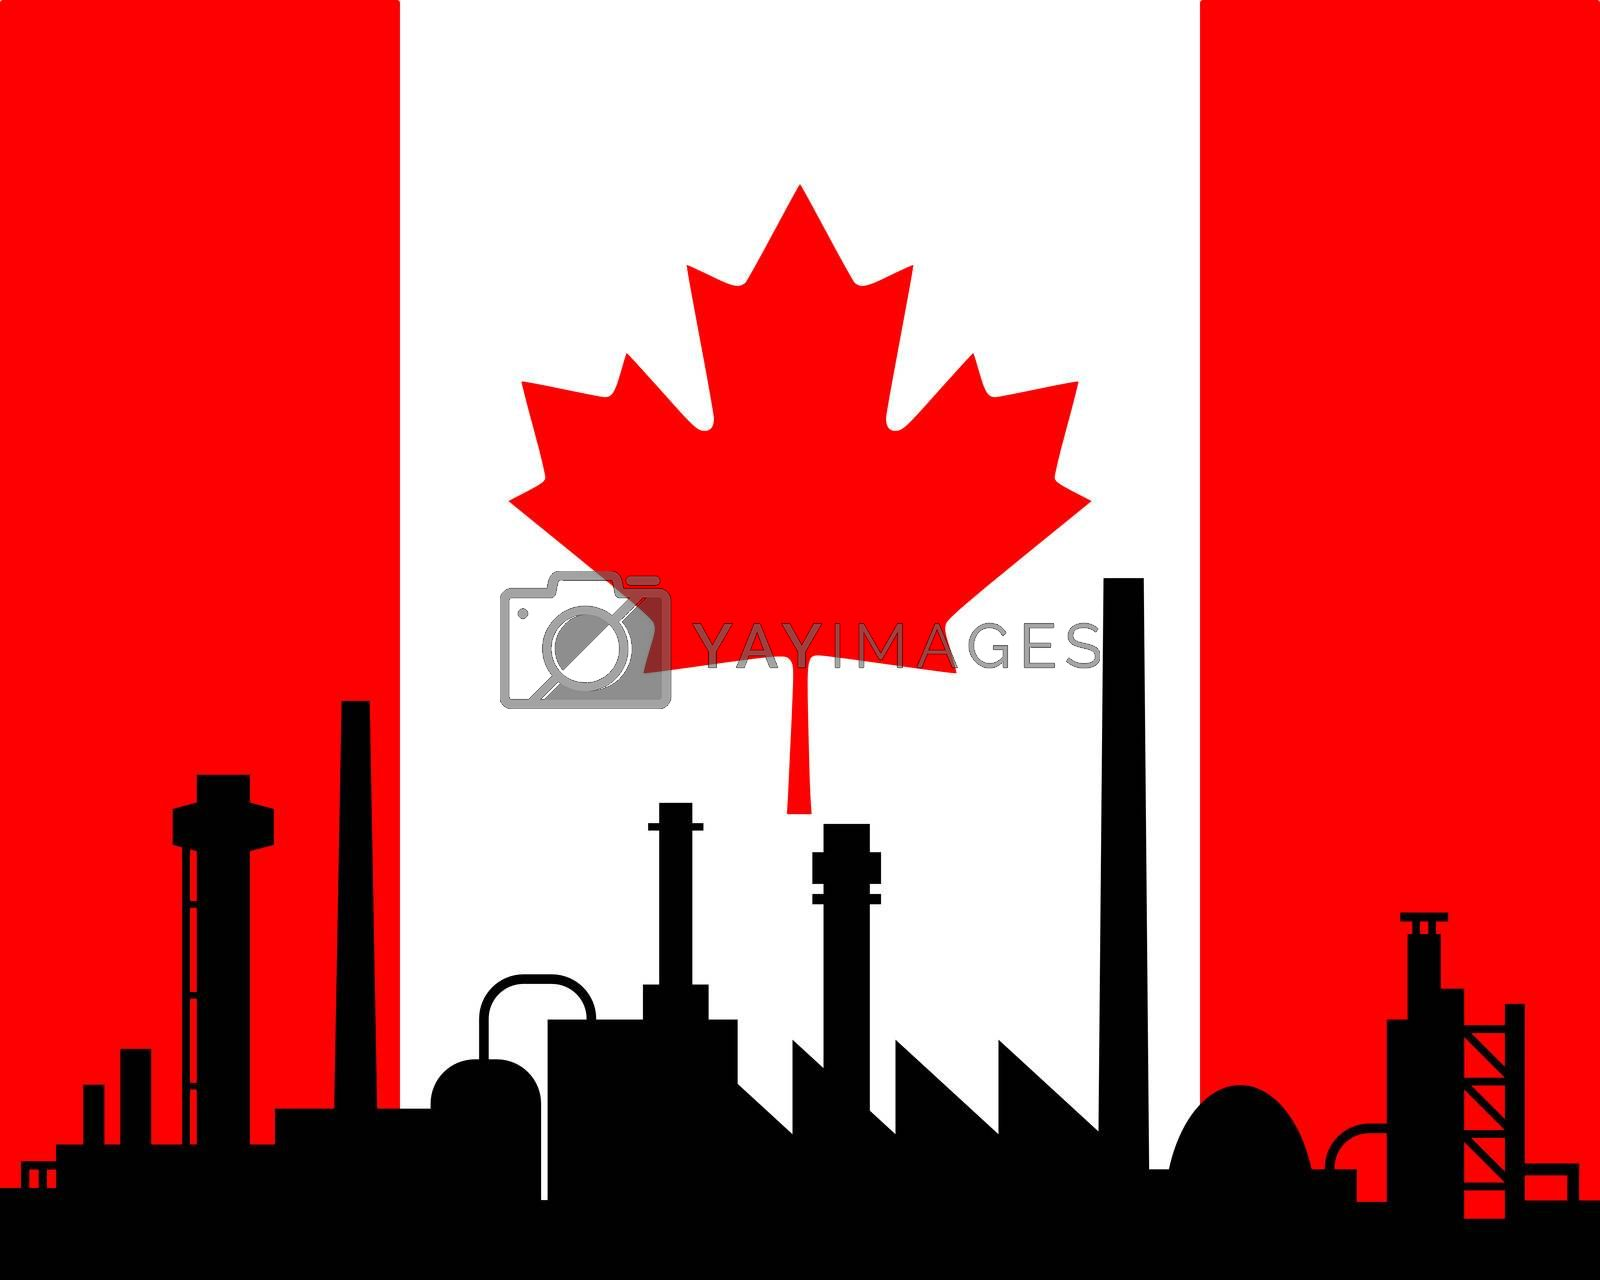 Industry and flag of Canada